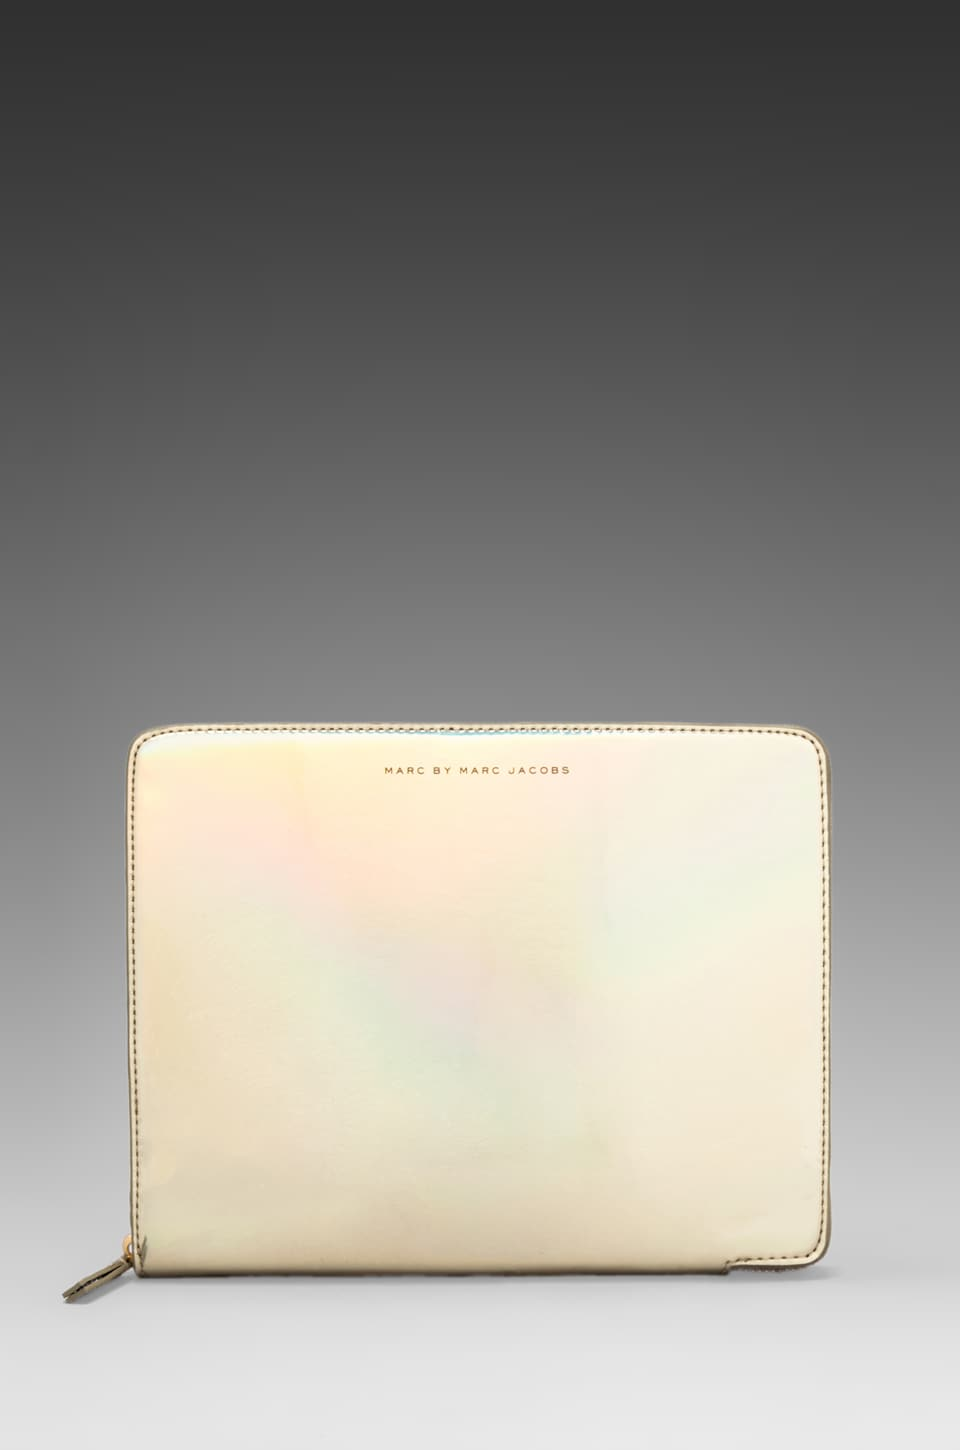 Marc by Marc Jacobs Techno Tablet Book in Pale Gold Holographic